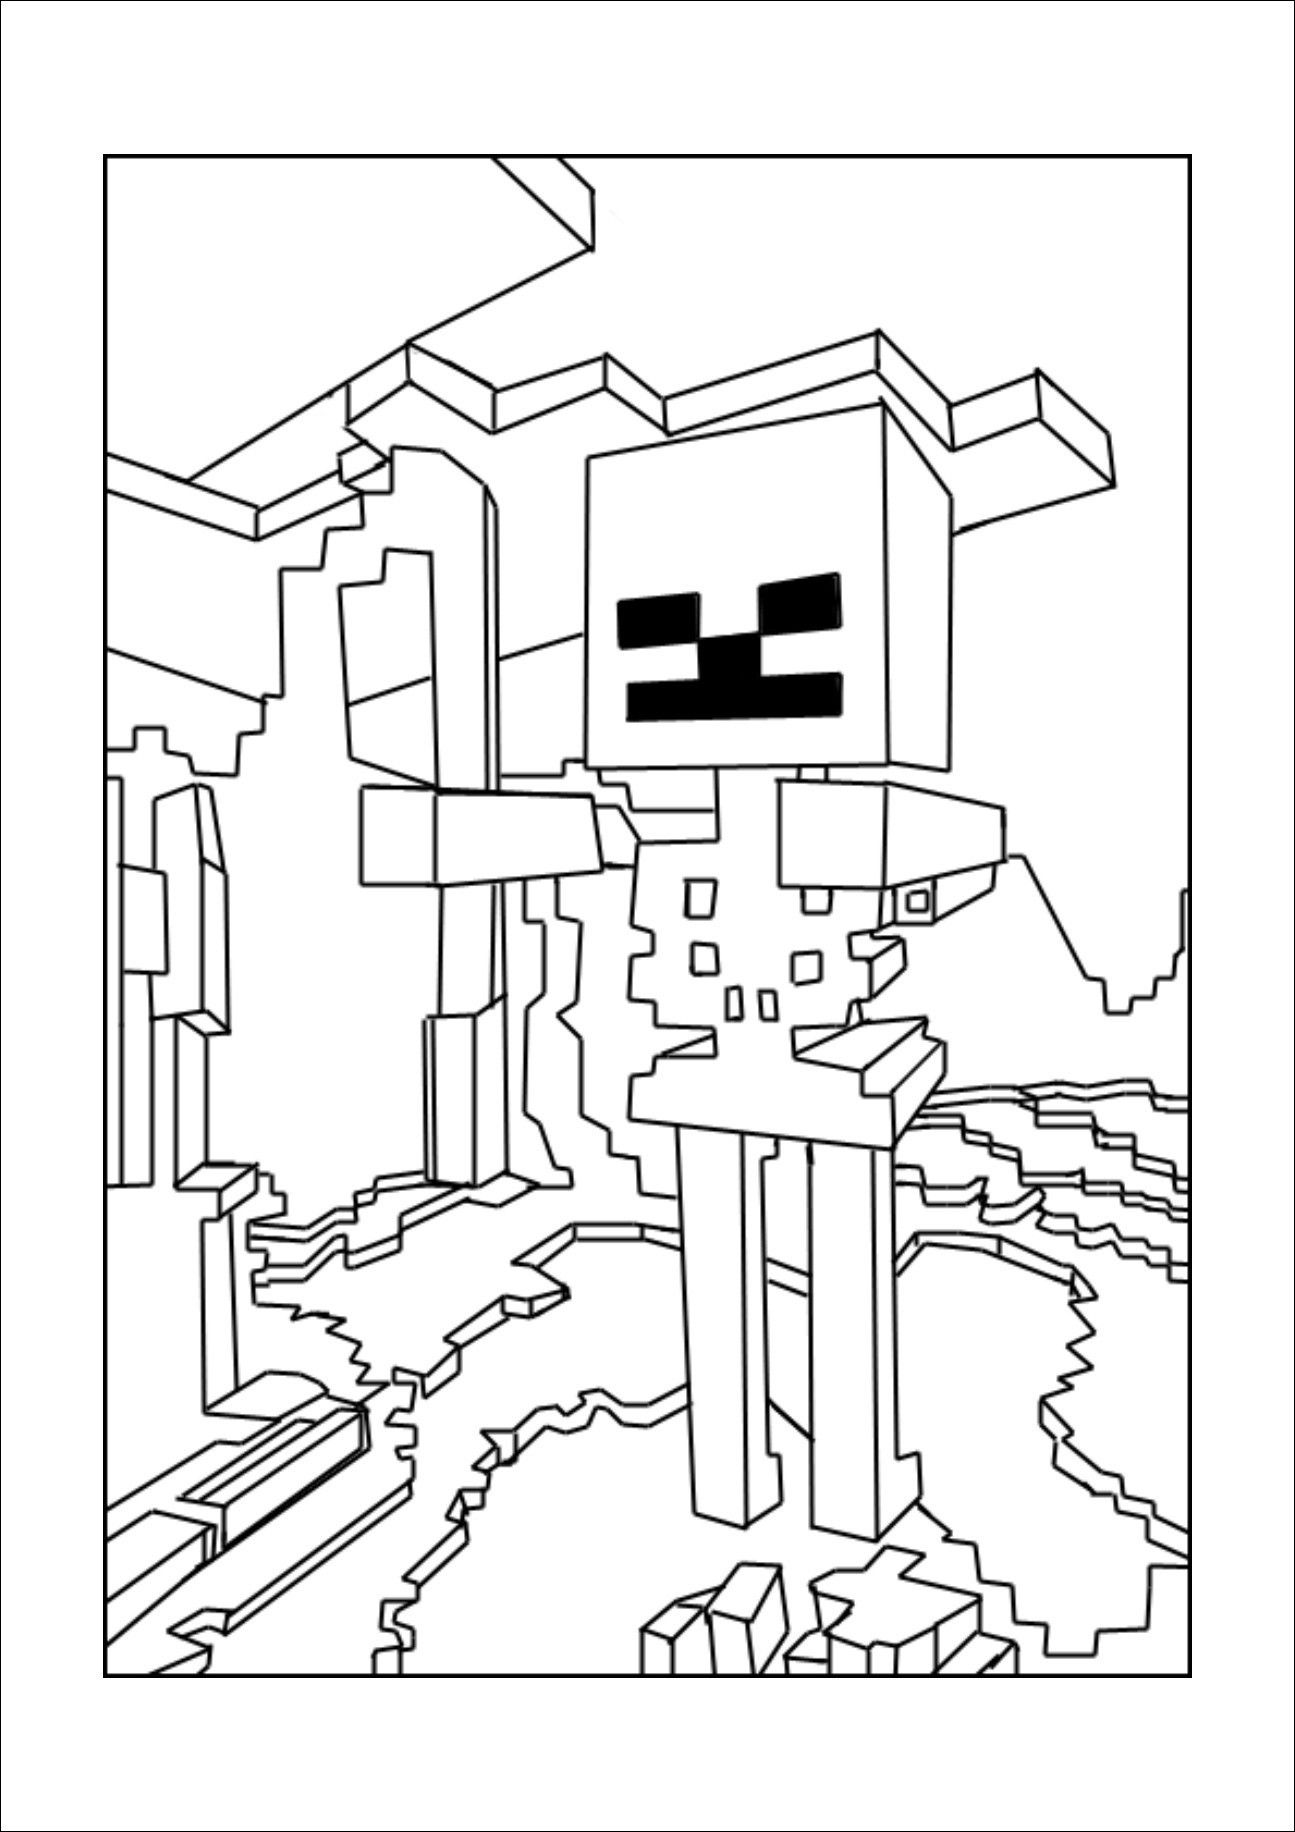 Free Printable Minecraft Coloring Page Youngandtae Com In 2020 Minecraft Coloring Pages Coloring Pages For Kids Coloring Pages Inspirational